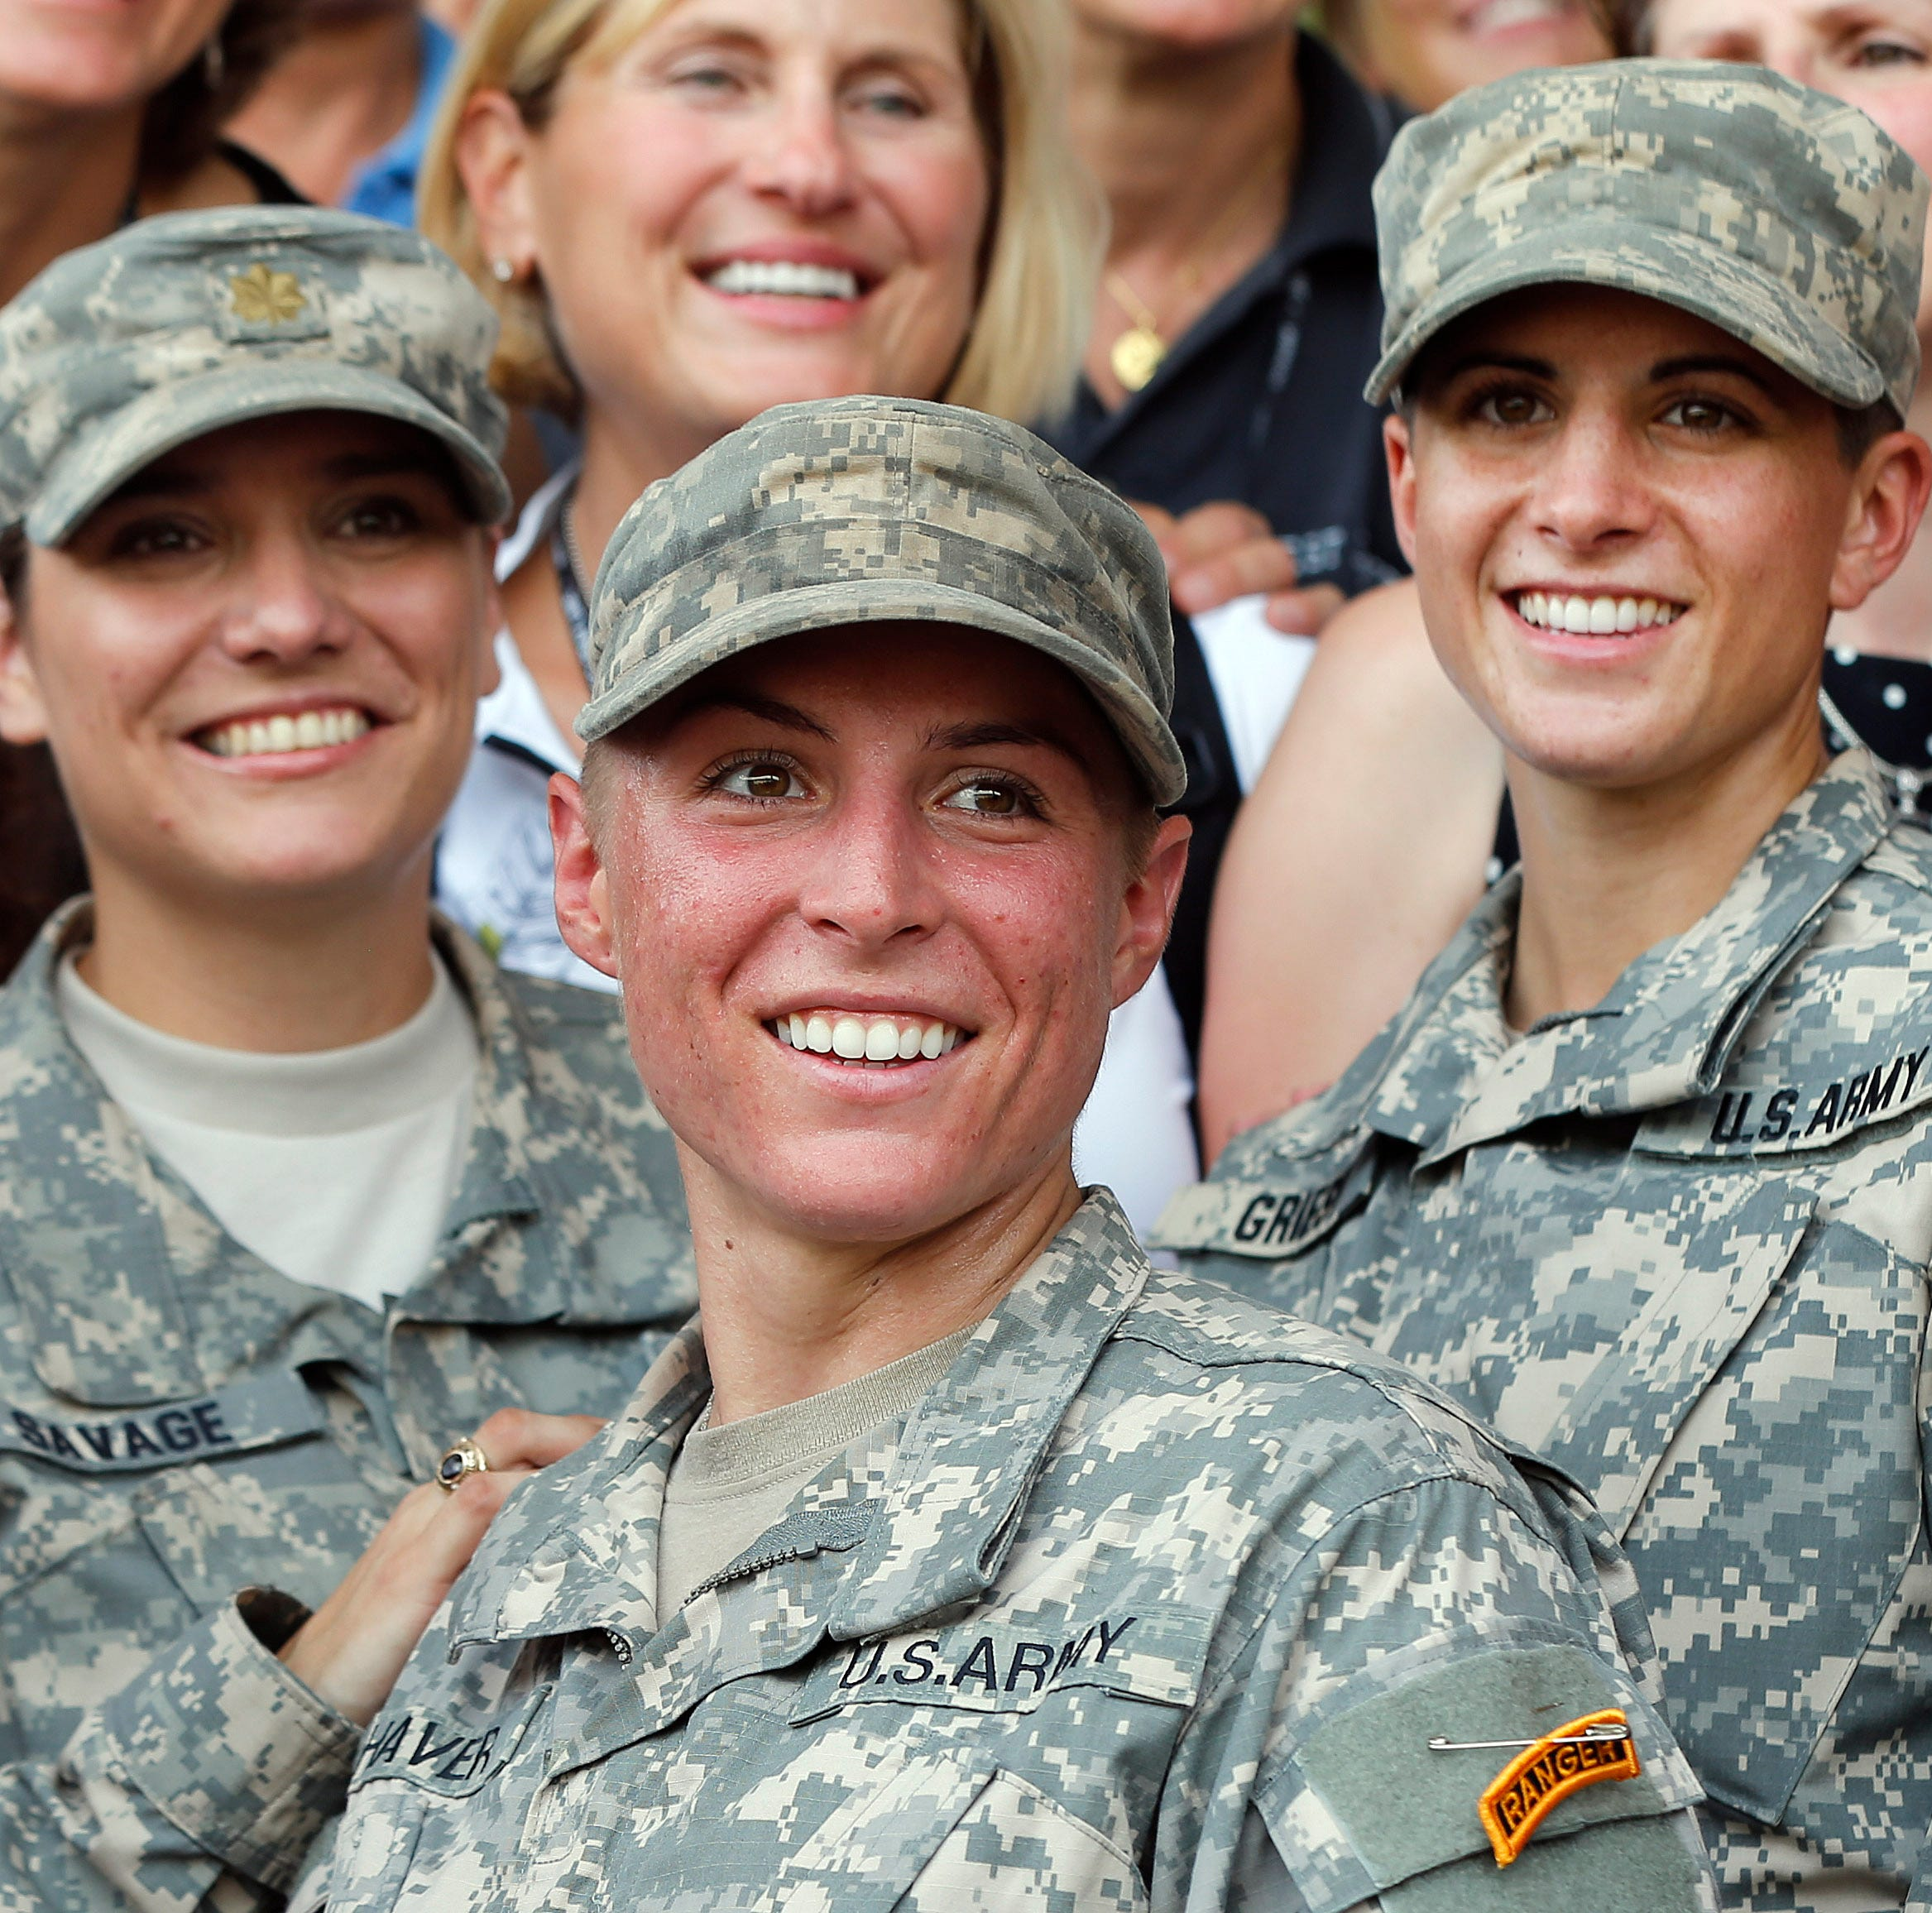 Should women be required to register for the draft? Commission likely to recommend big changes